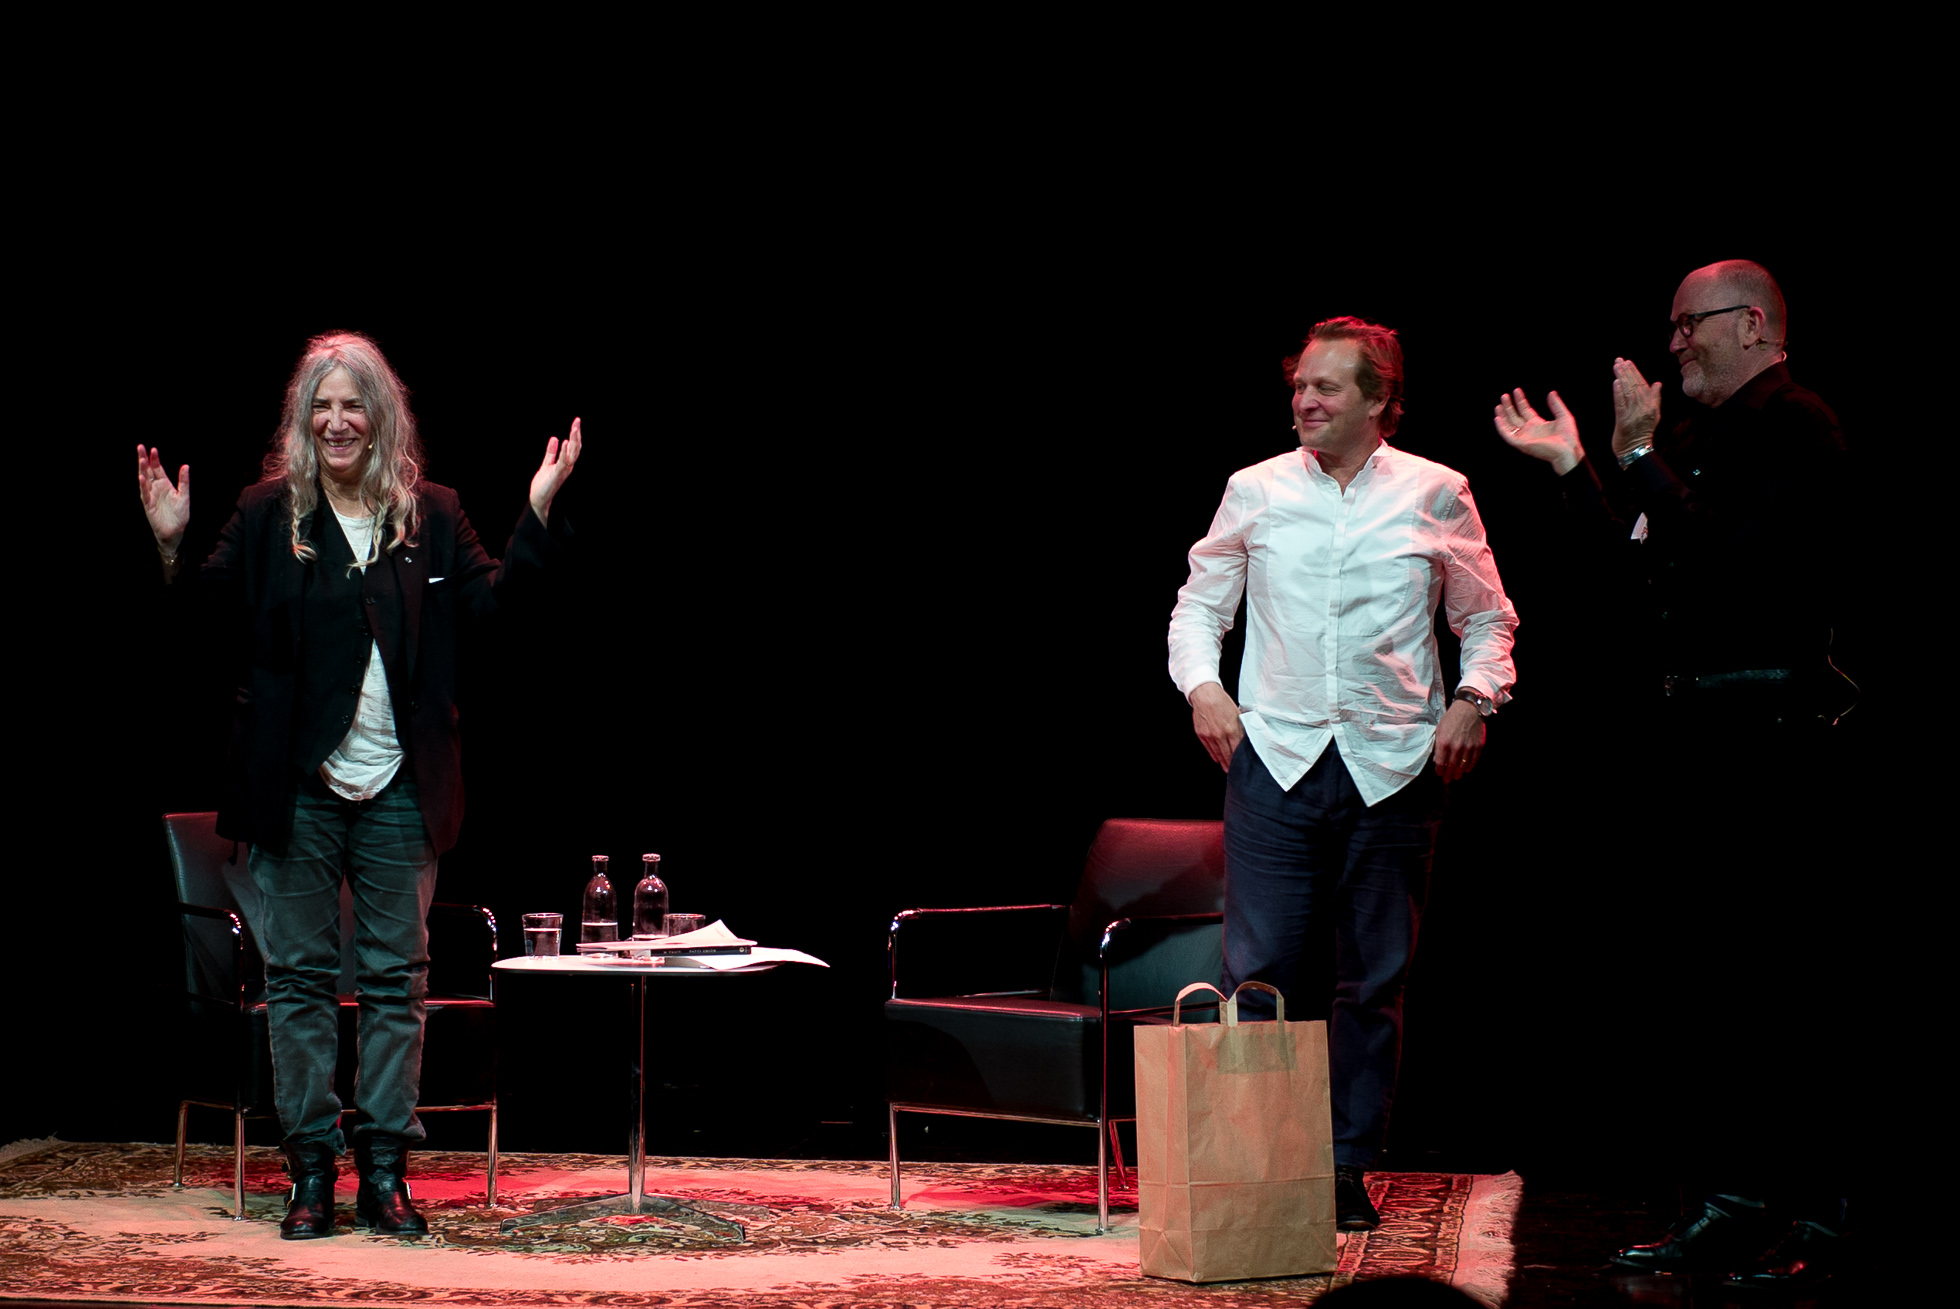 2016-09-24-patti-smith-kulturhuset_2016-09-24_max-dahlstrand_0046